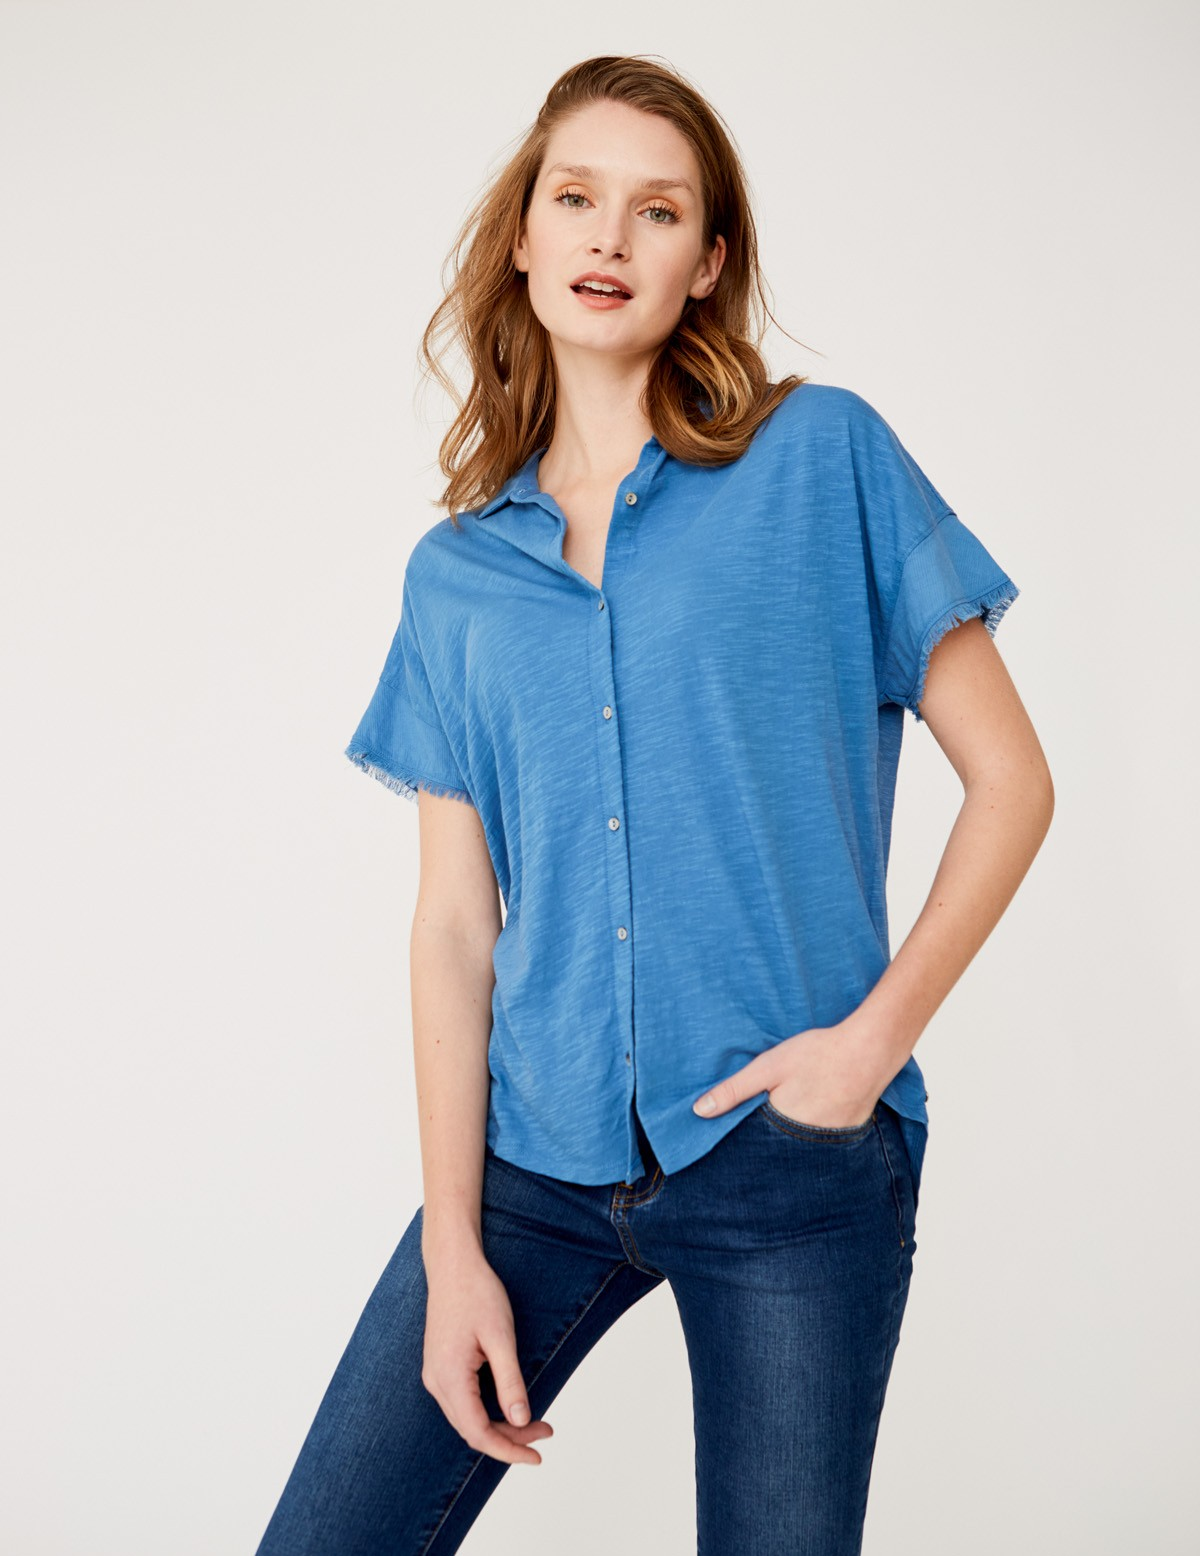 Shirt with sleeve detail